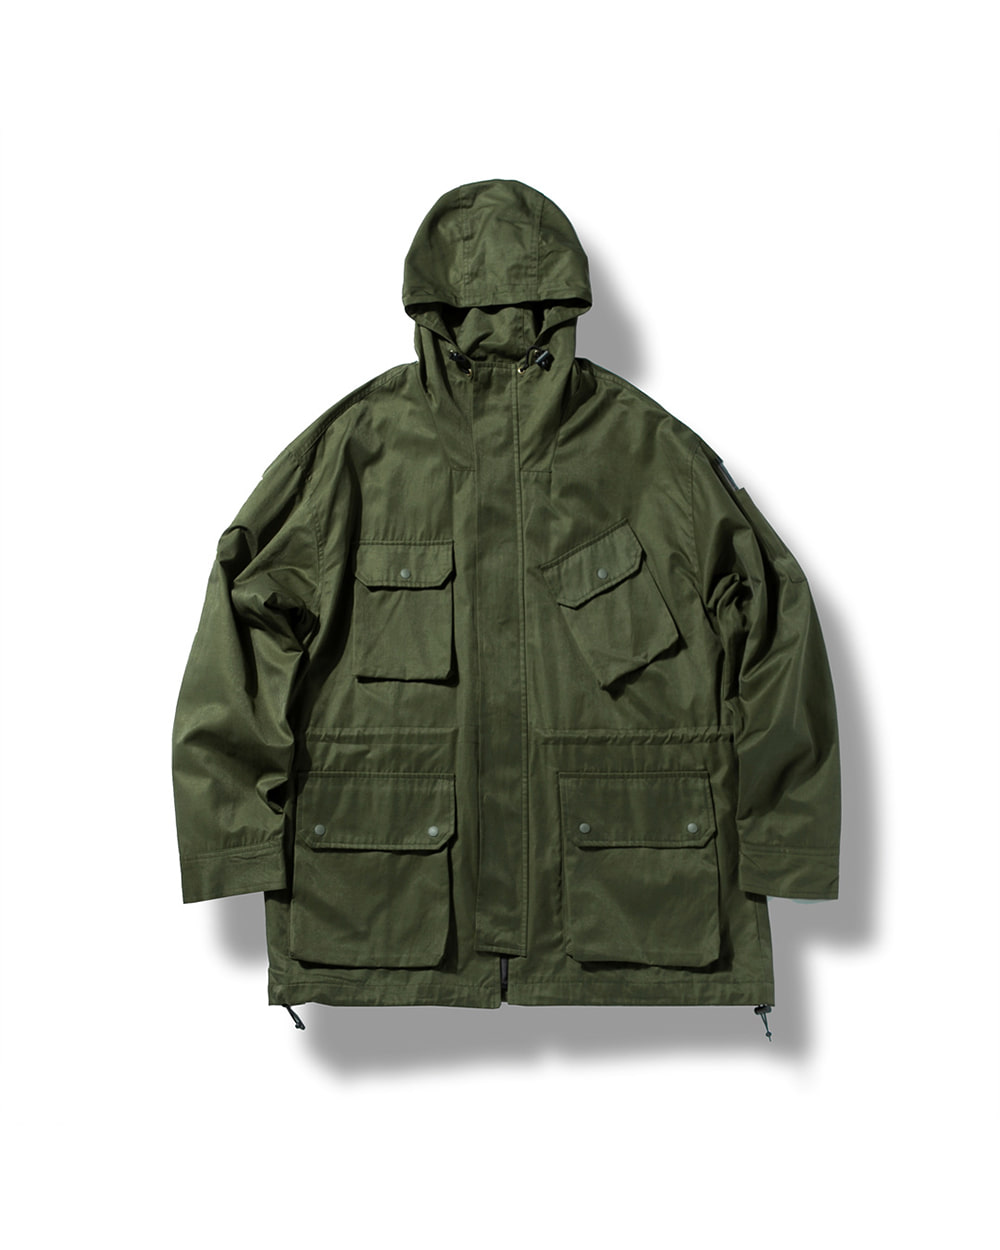 COMBAT MOUNTAIN JACKET OLIVE